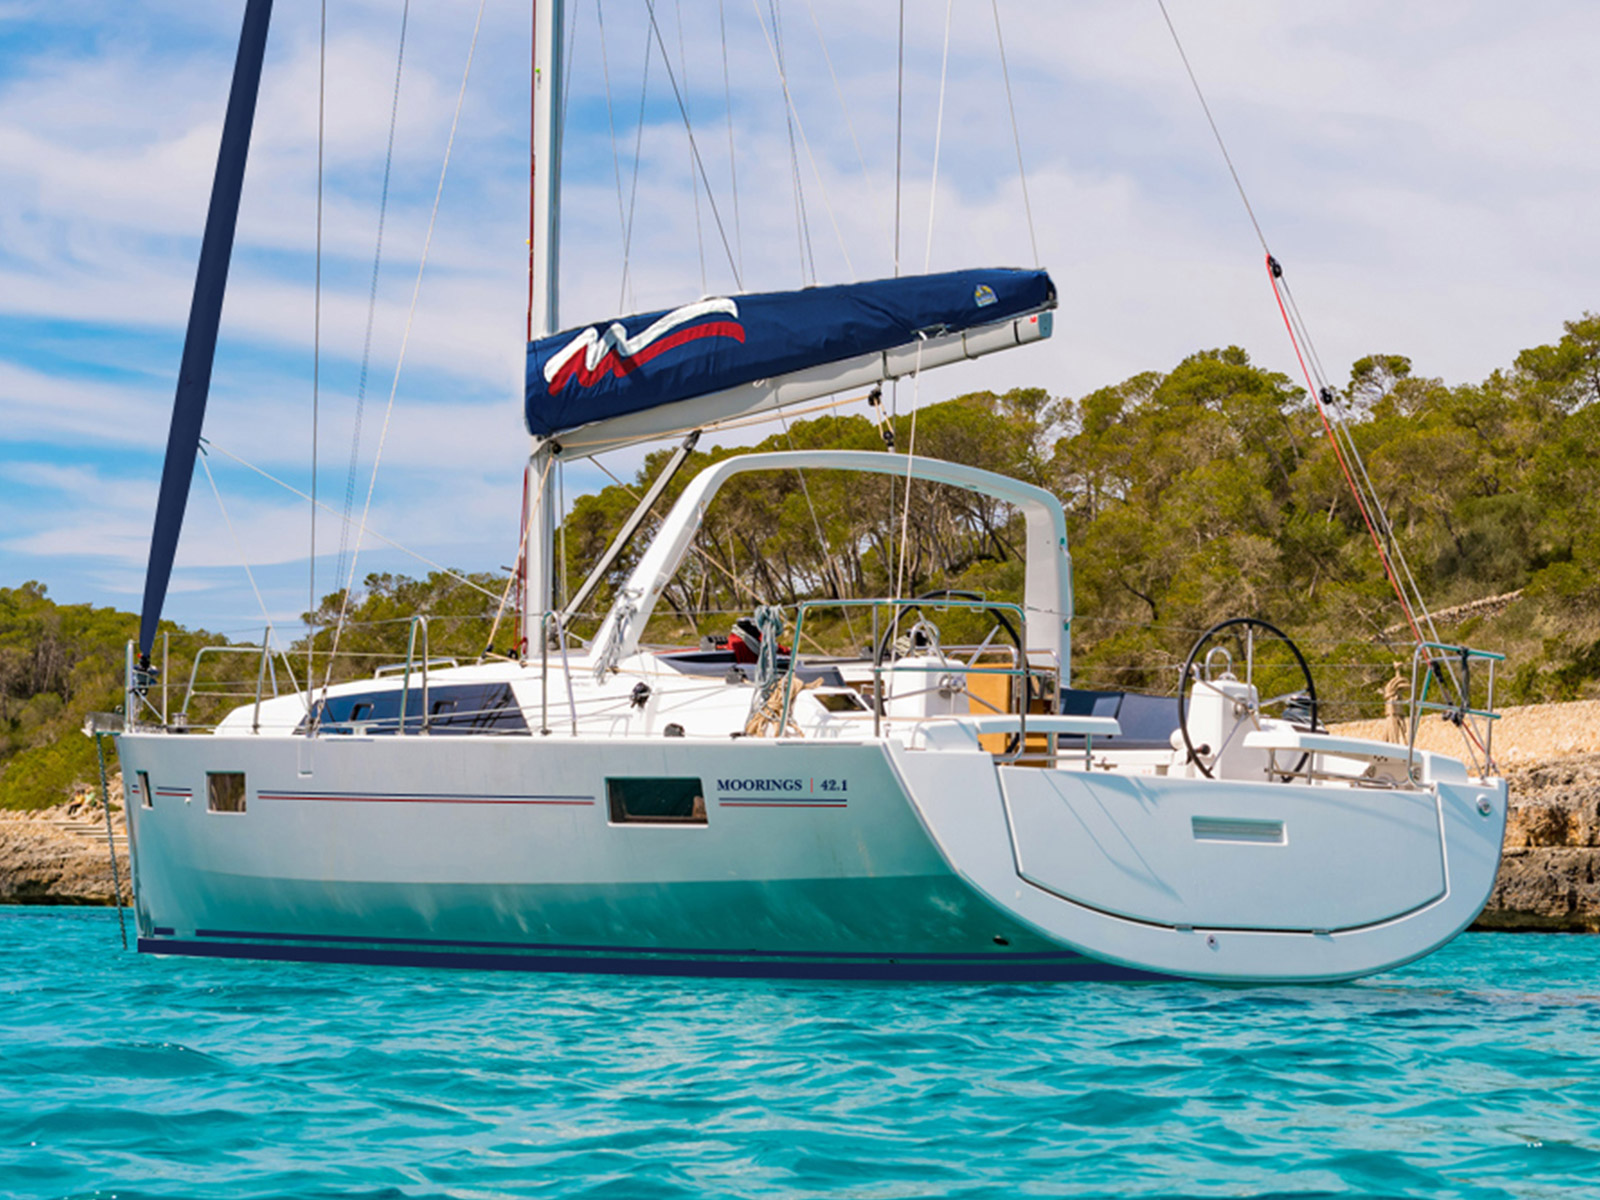 Yacht charter Moorings 42.1 - Bahamas, Abacos, Marsh Harbour